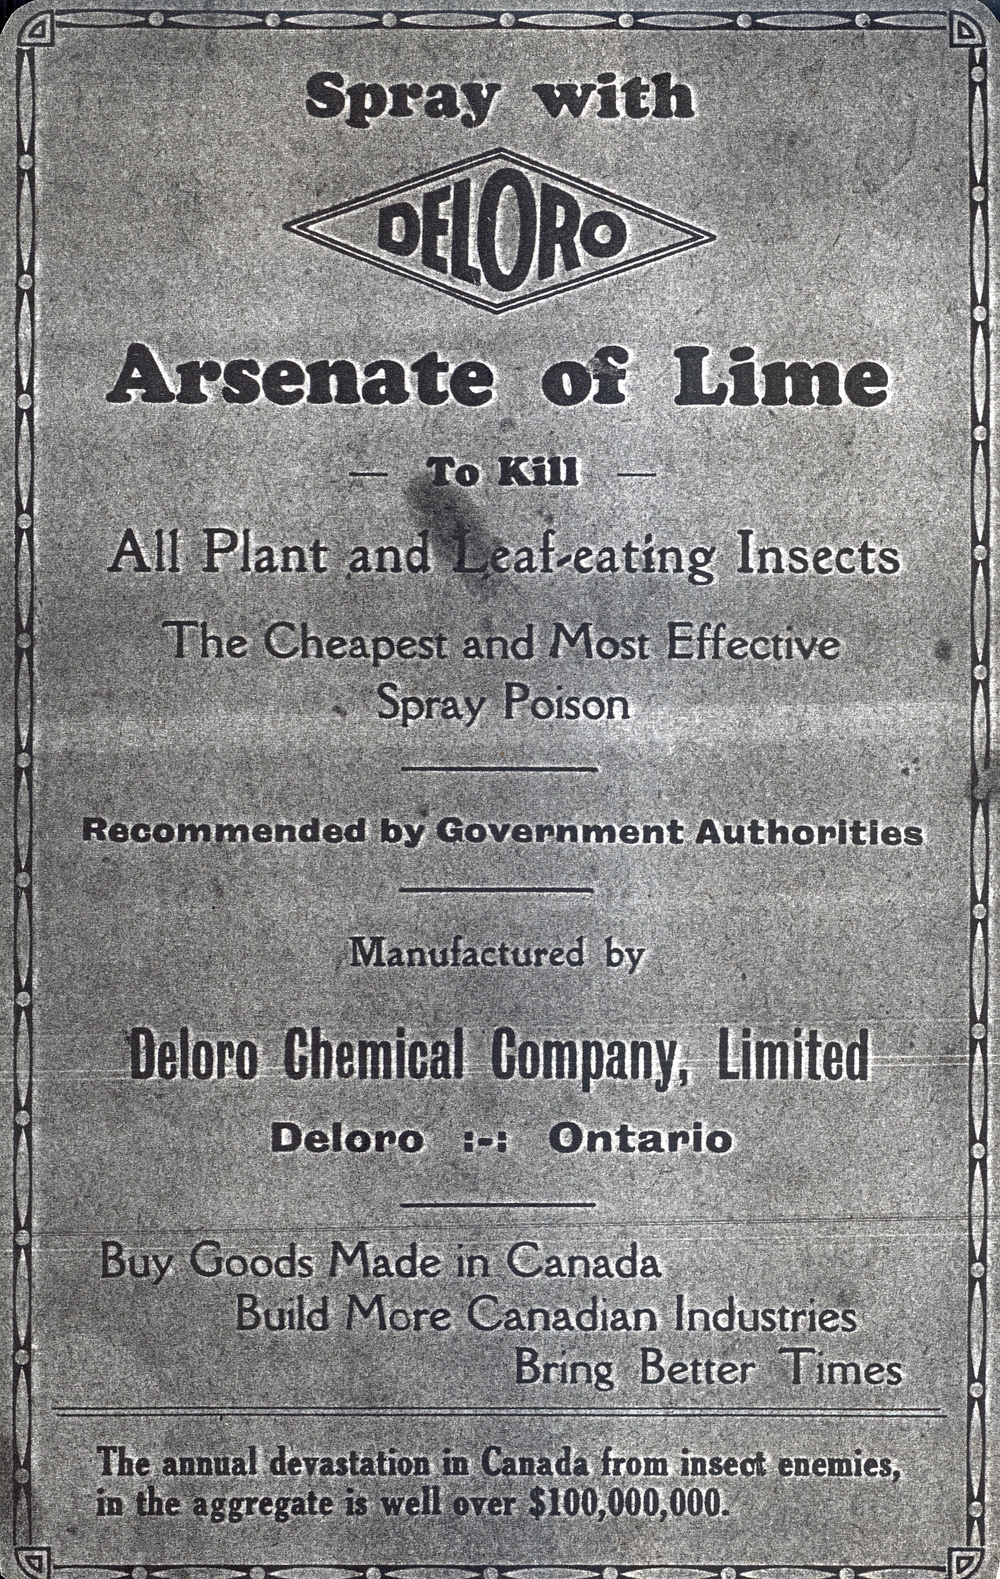 Deloro Chemical Co. Arsenic Advertising